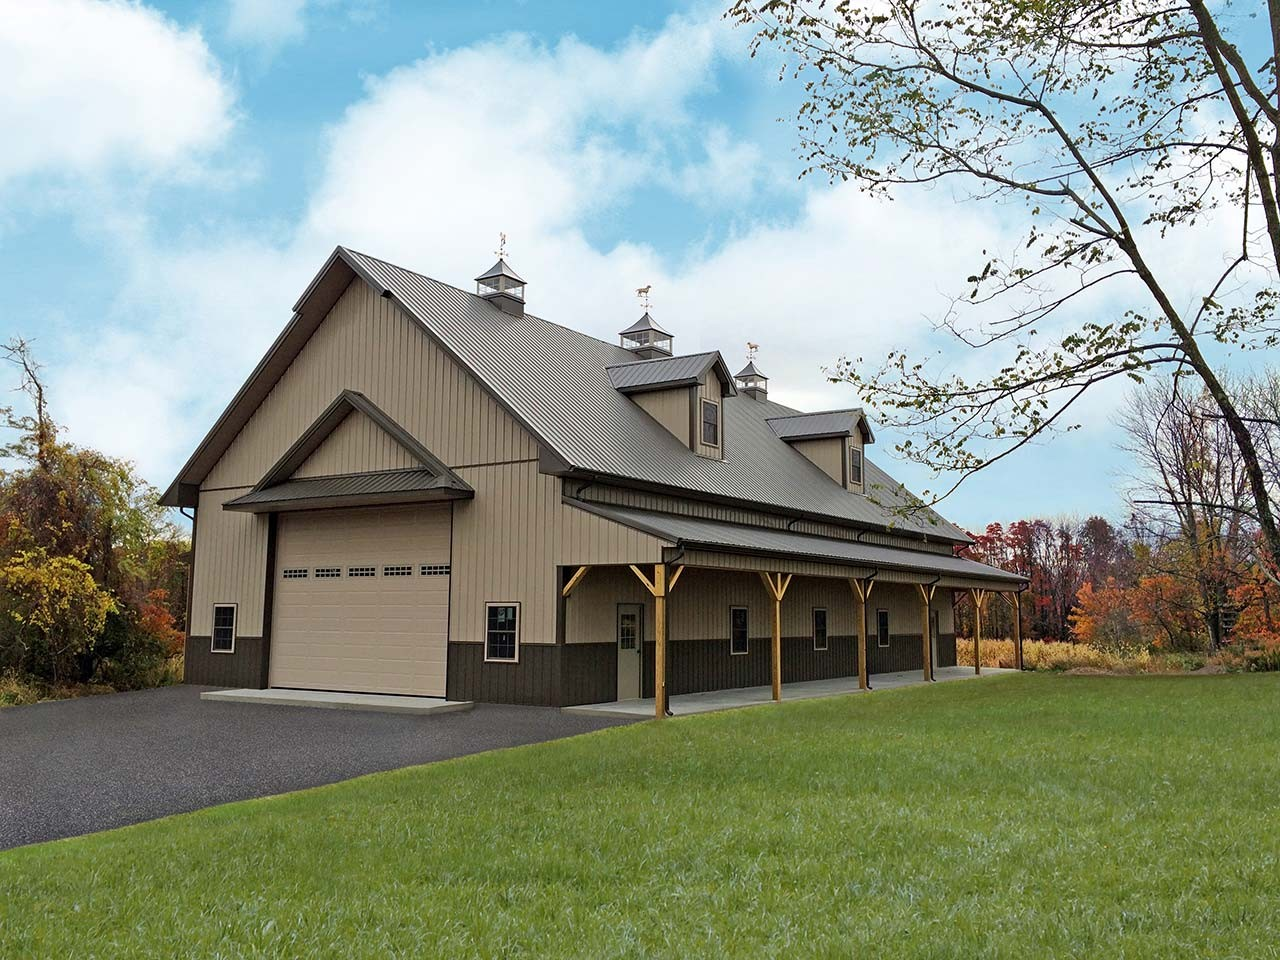 Residential pole barn houses joy studio design gallery for Barn home builders